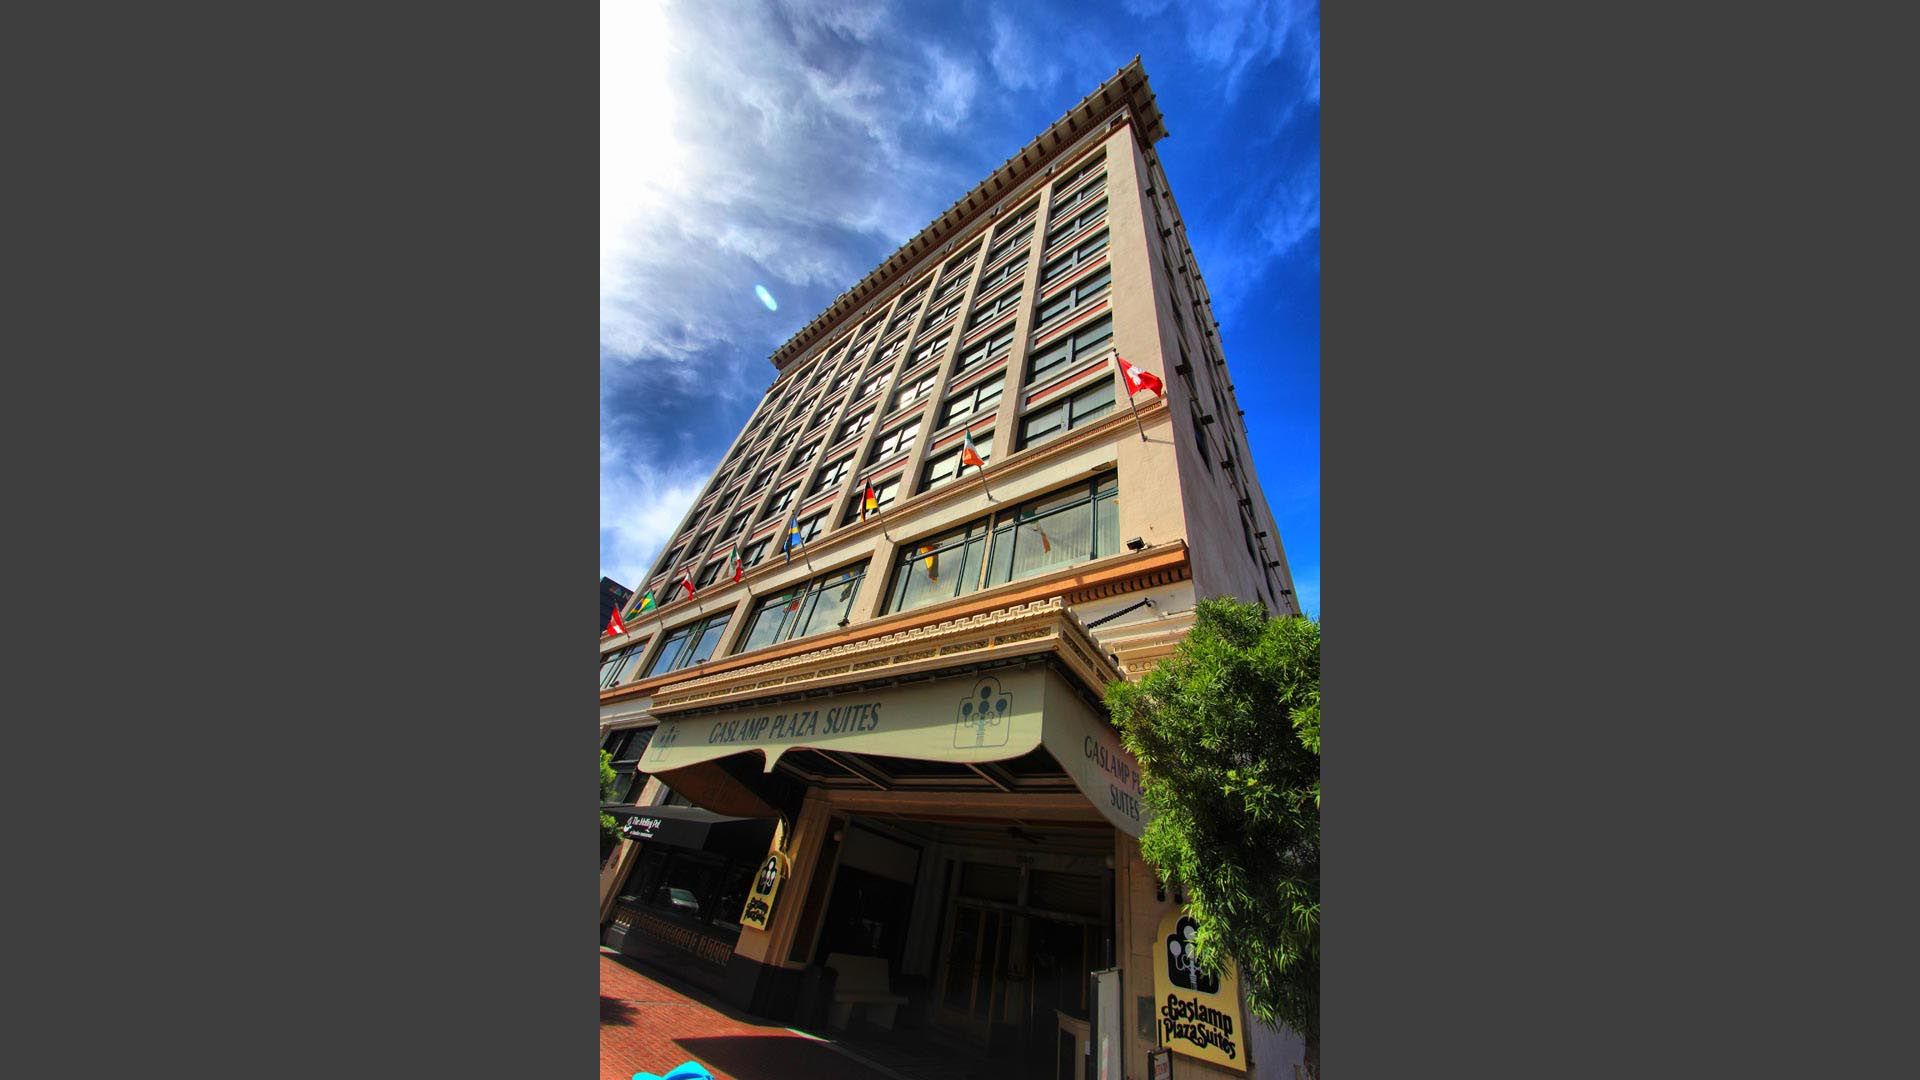 Gaslamp Plaza Resort Building